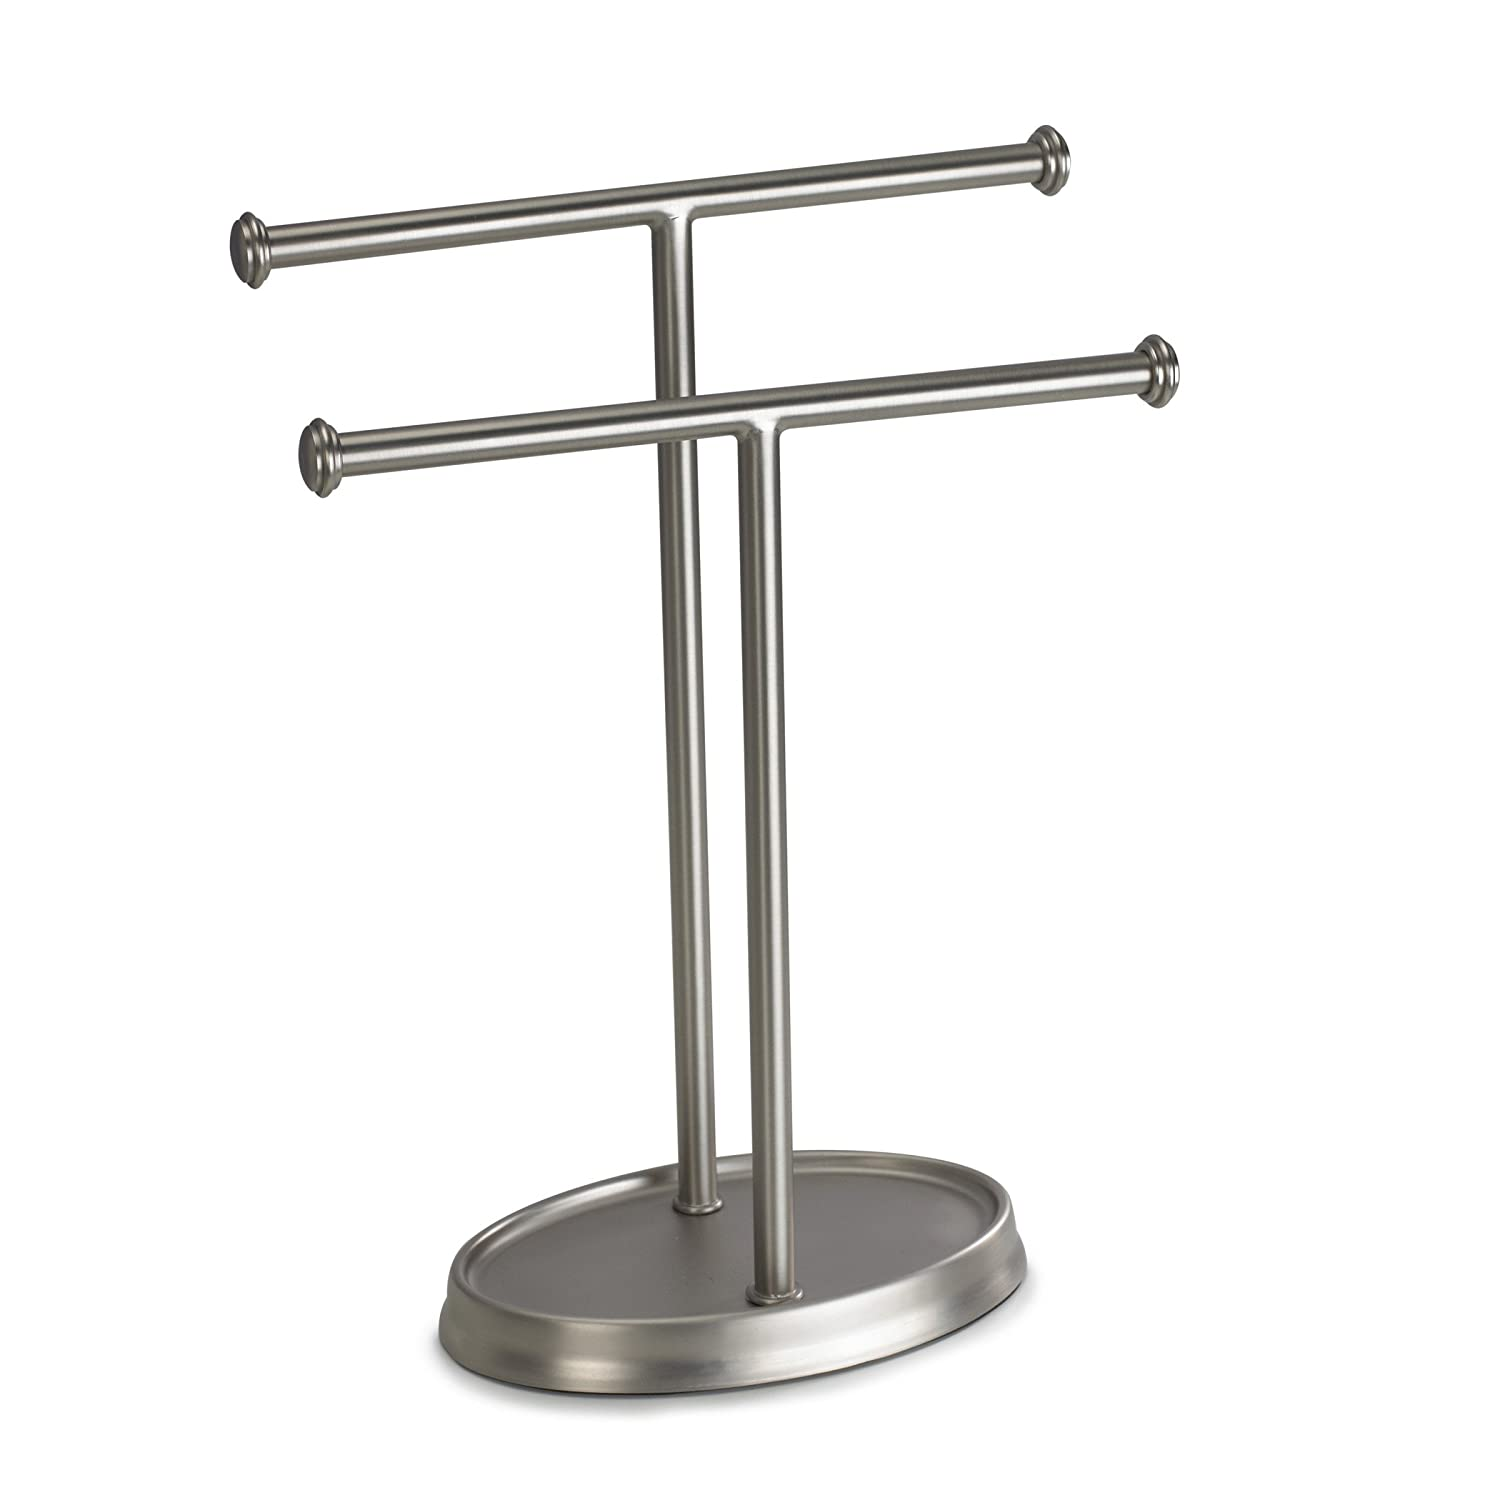 Countertop Towel Ring Towel Racks And Holders For Kitchen And Bathroom